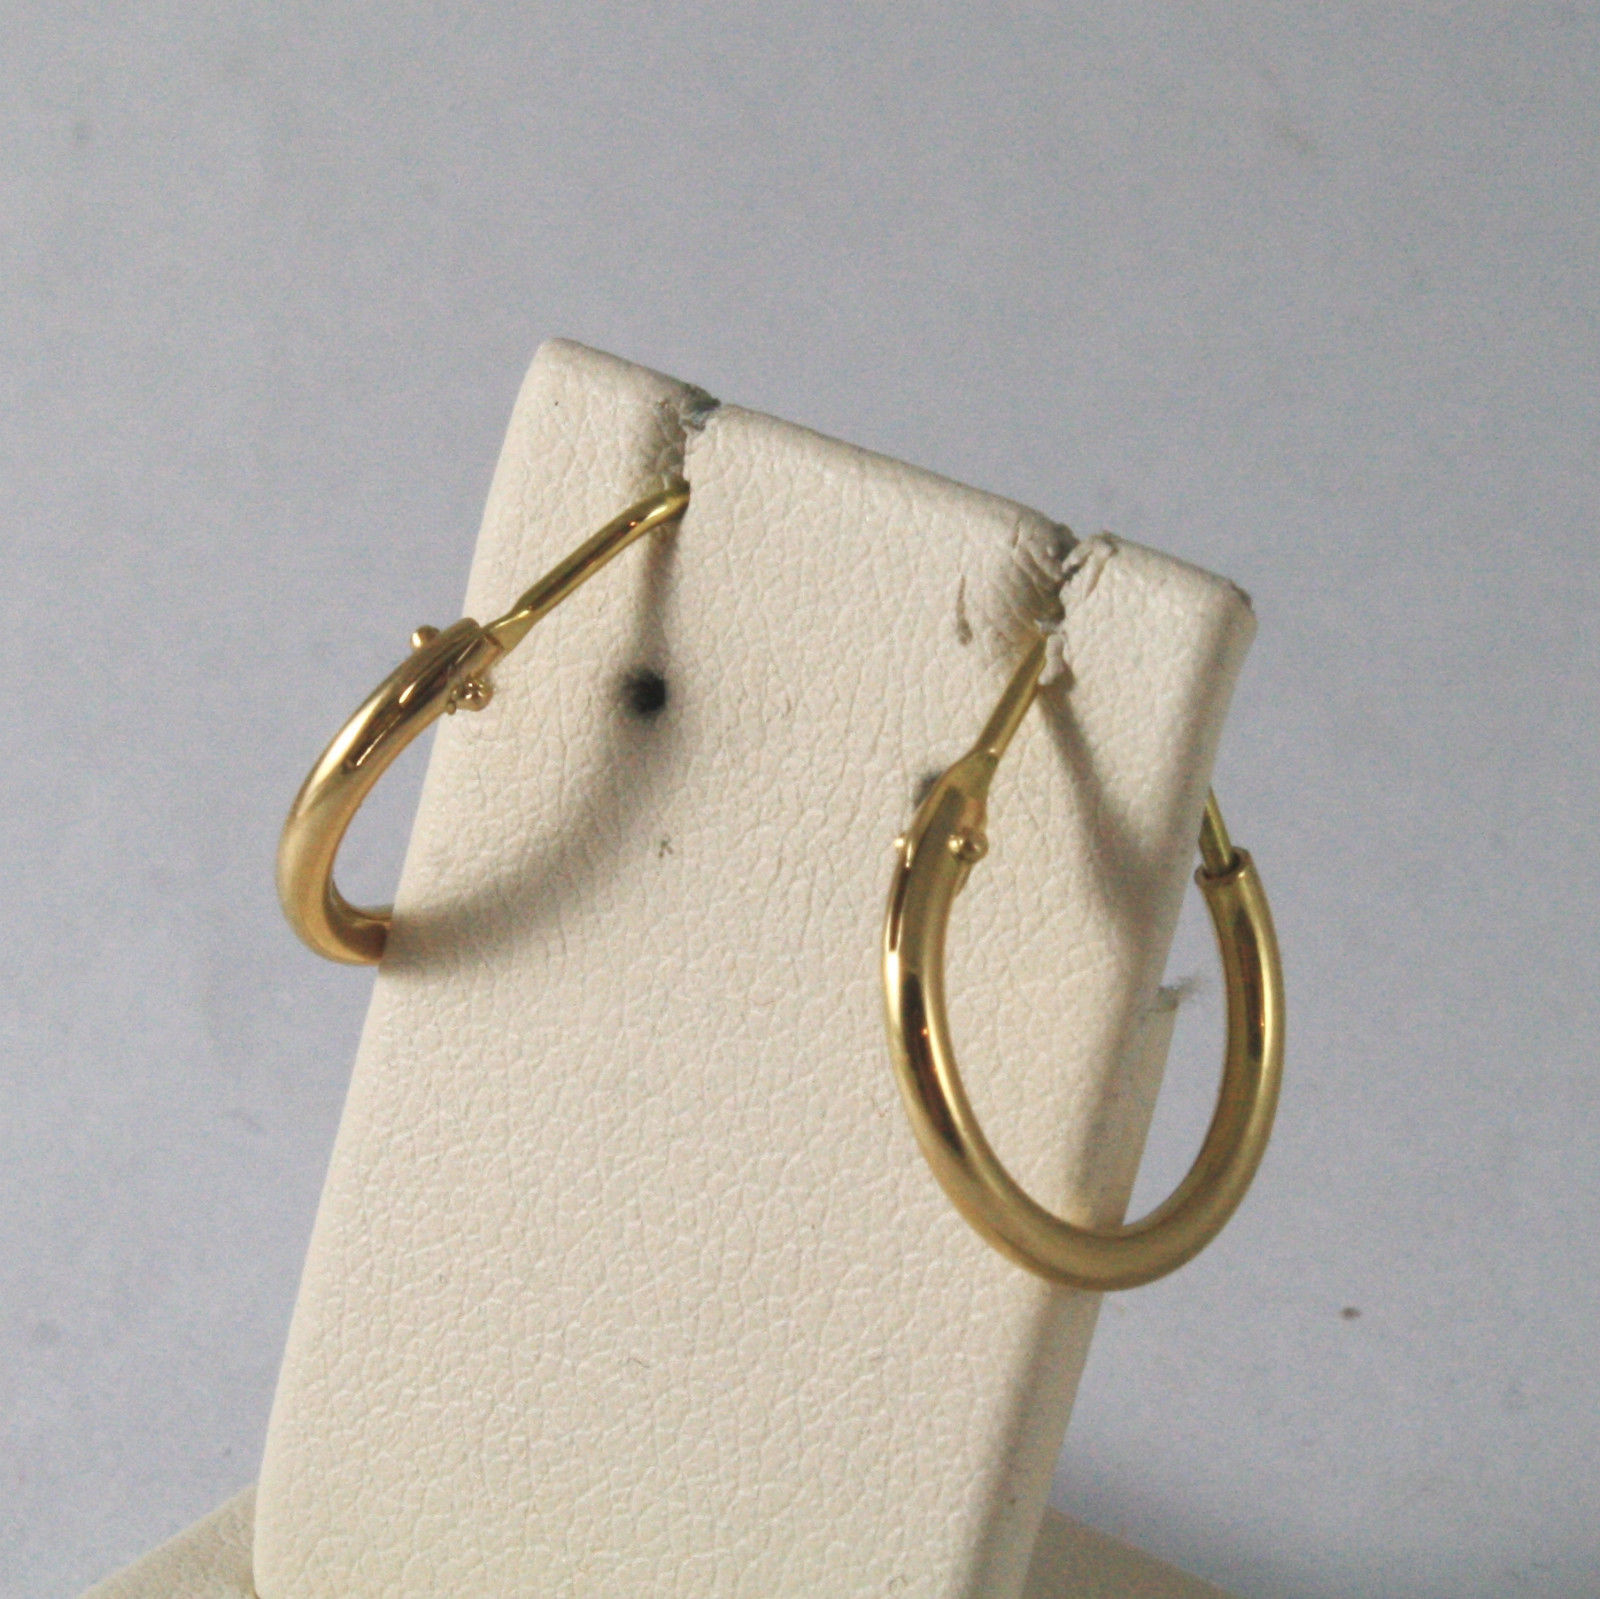 SOLID 18KT. YELLOW GOLD CIRCLE TUBE EARRINGS DIAMETER 0,55 IN MADE IN ITALY 18K